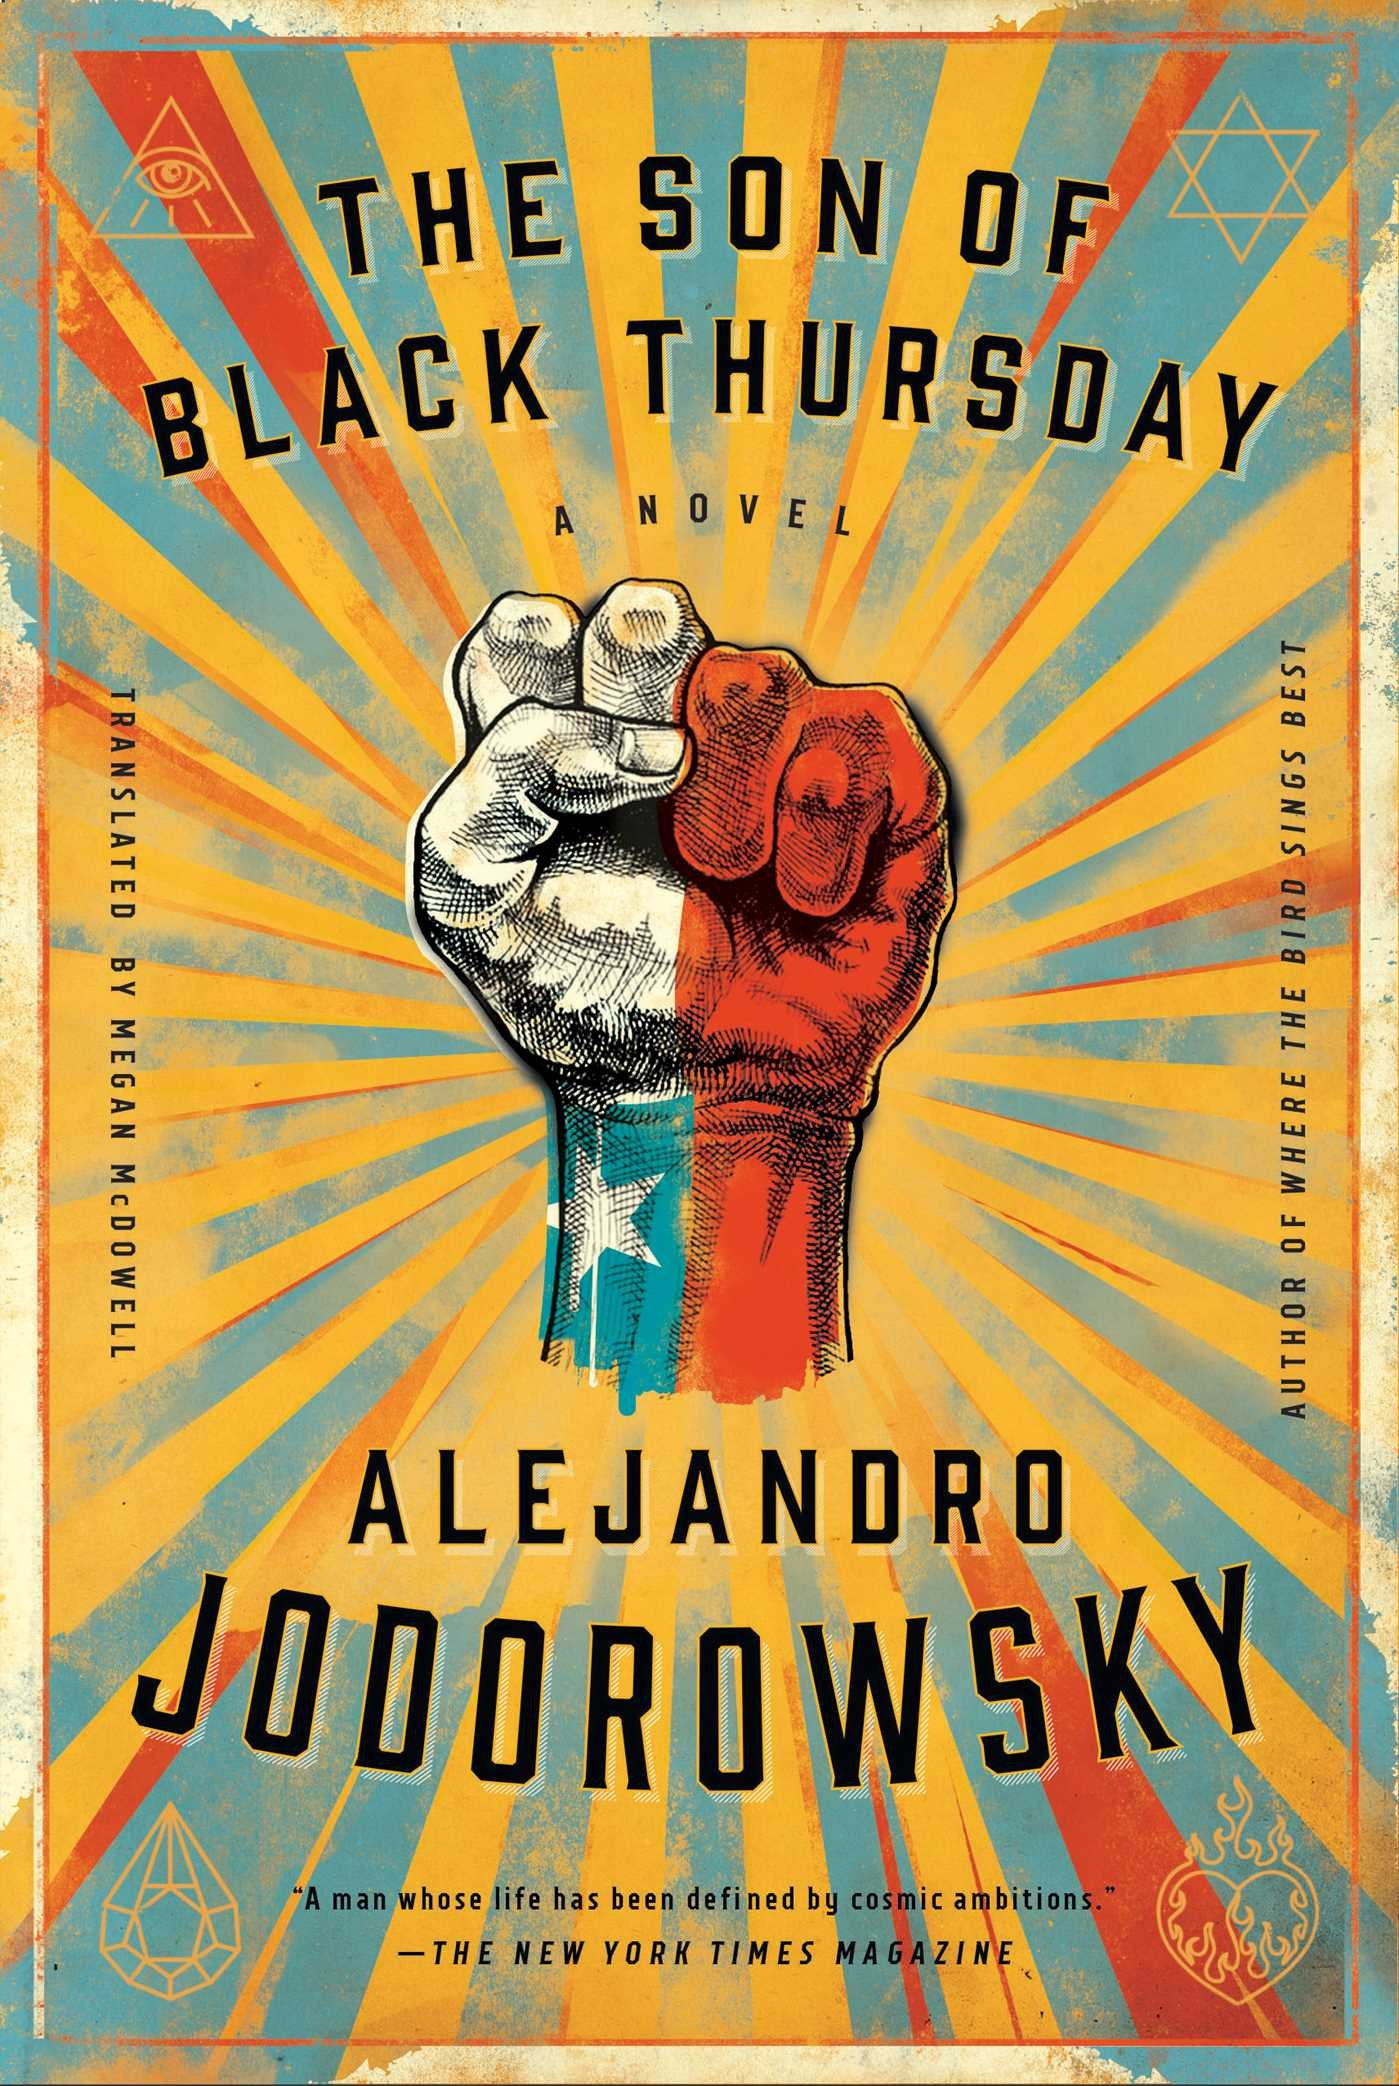 b448995e5c The Son of Black Thursday by Alejandro Jodorowsky